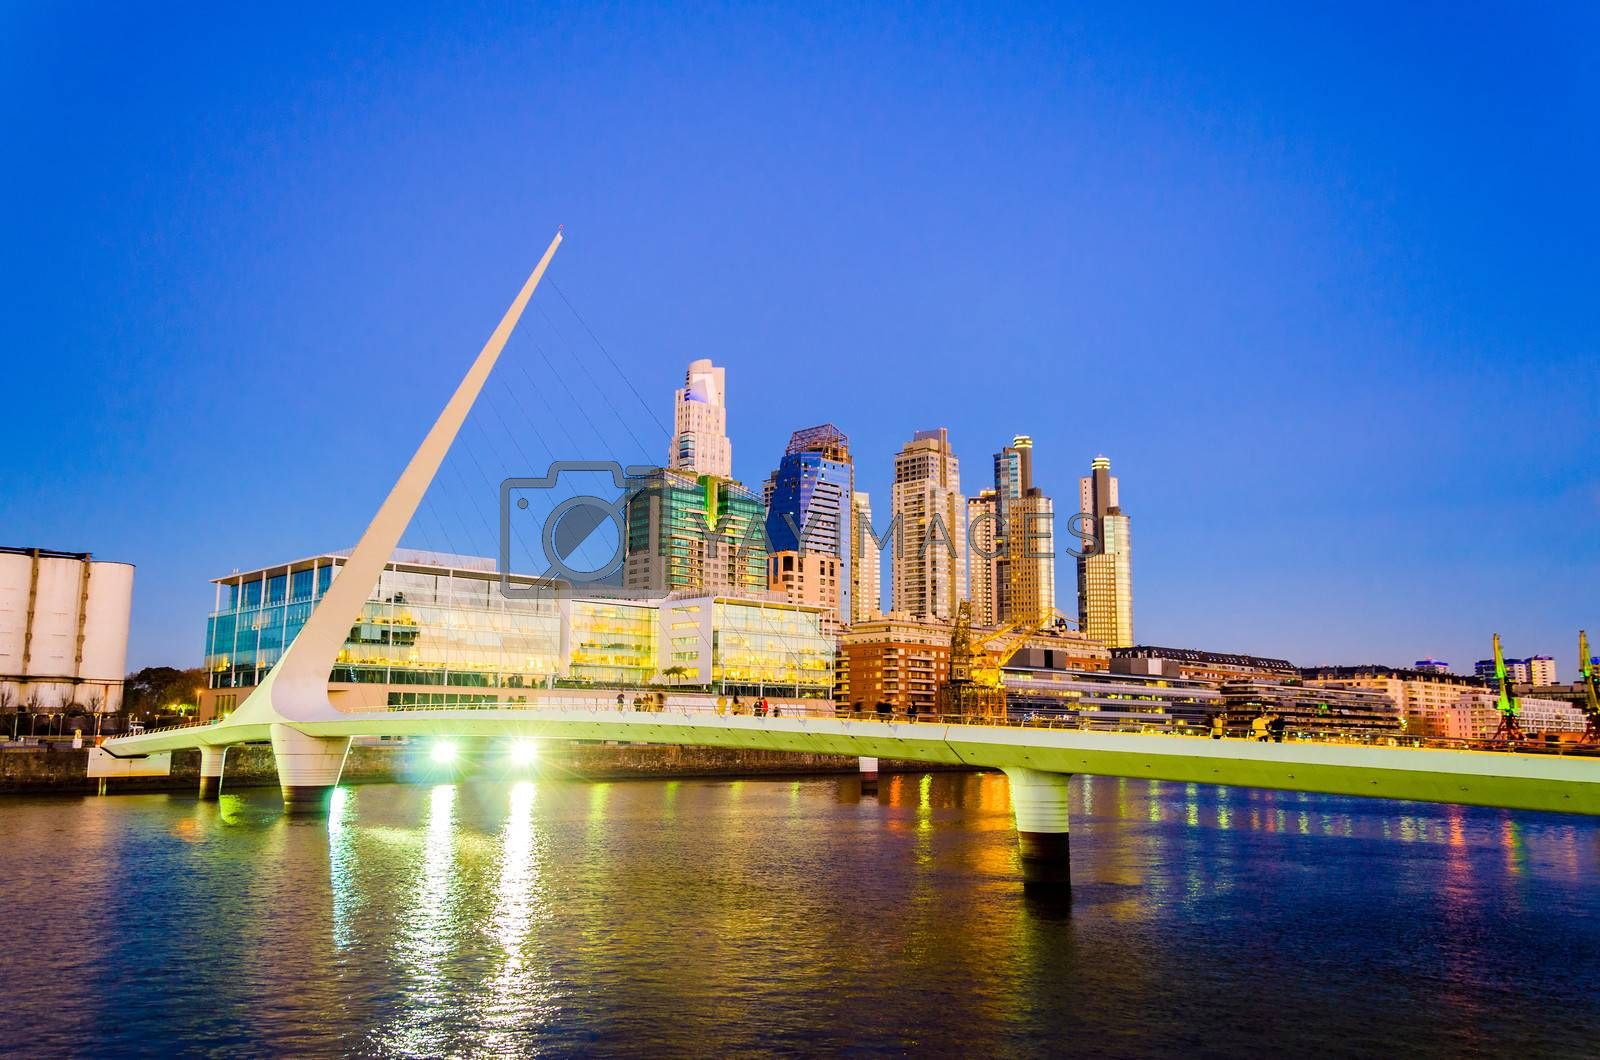 Women's Bridge and upscale skyscrapers at night in Puerto Madero neighborhood of Buenos Aires